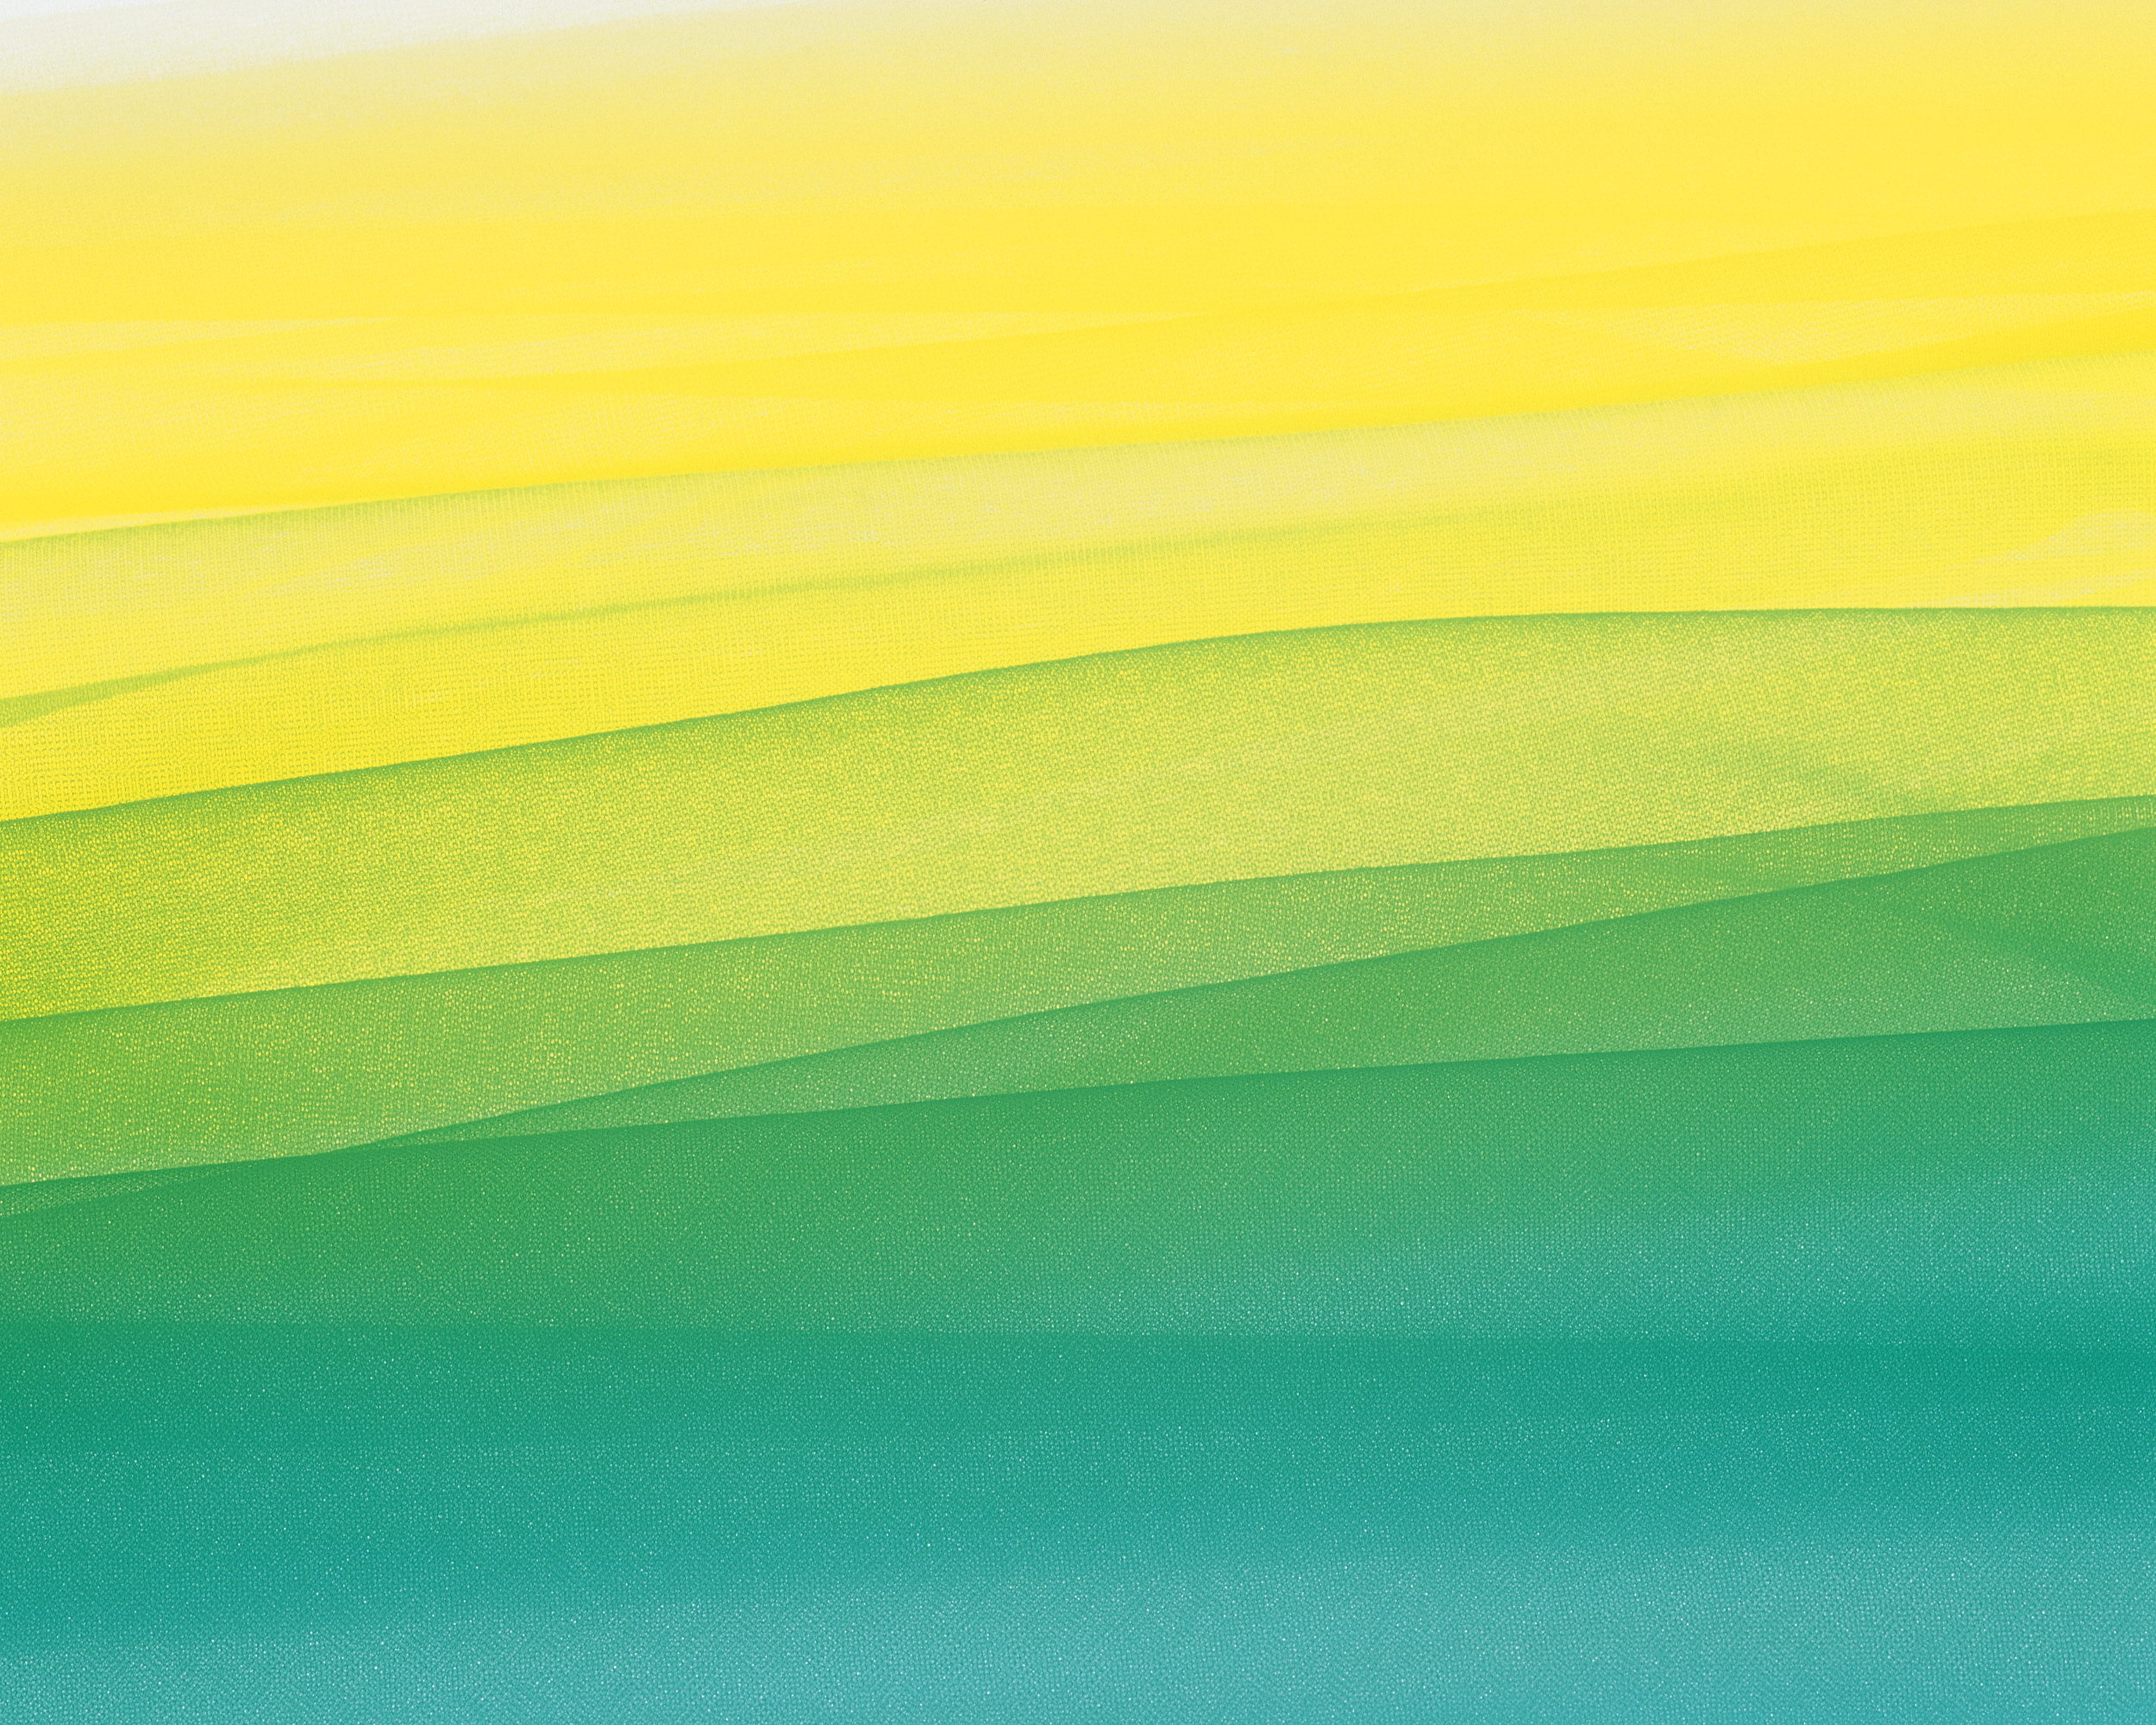 yellow and green wallpaper